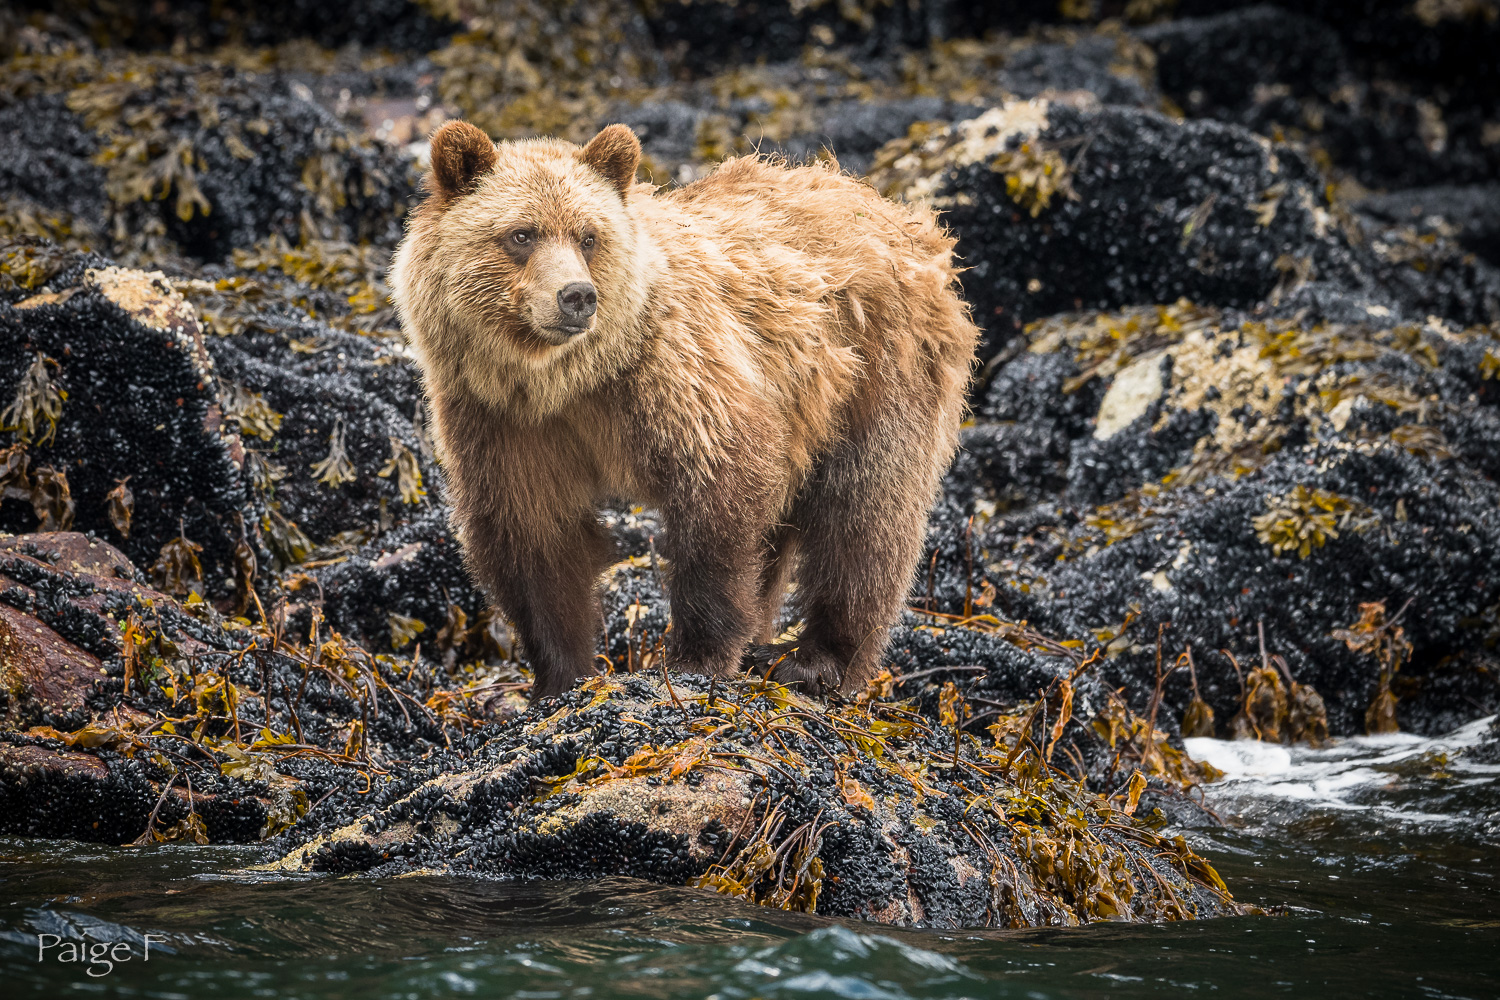 20180719-19-Grizzly-425-2.jpg